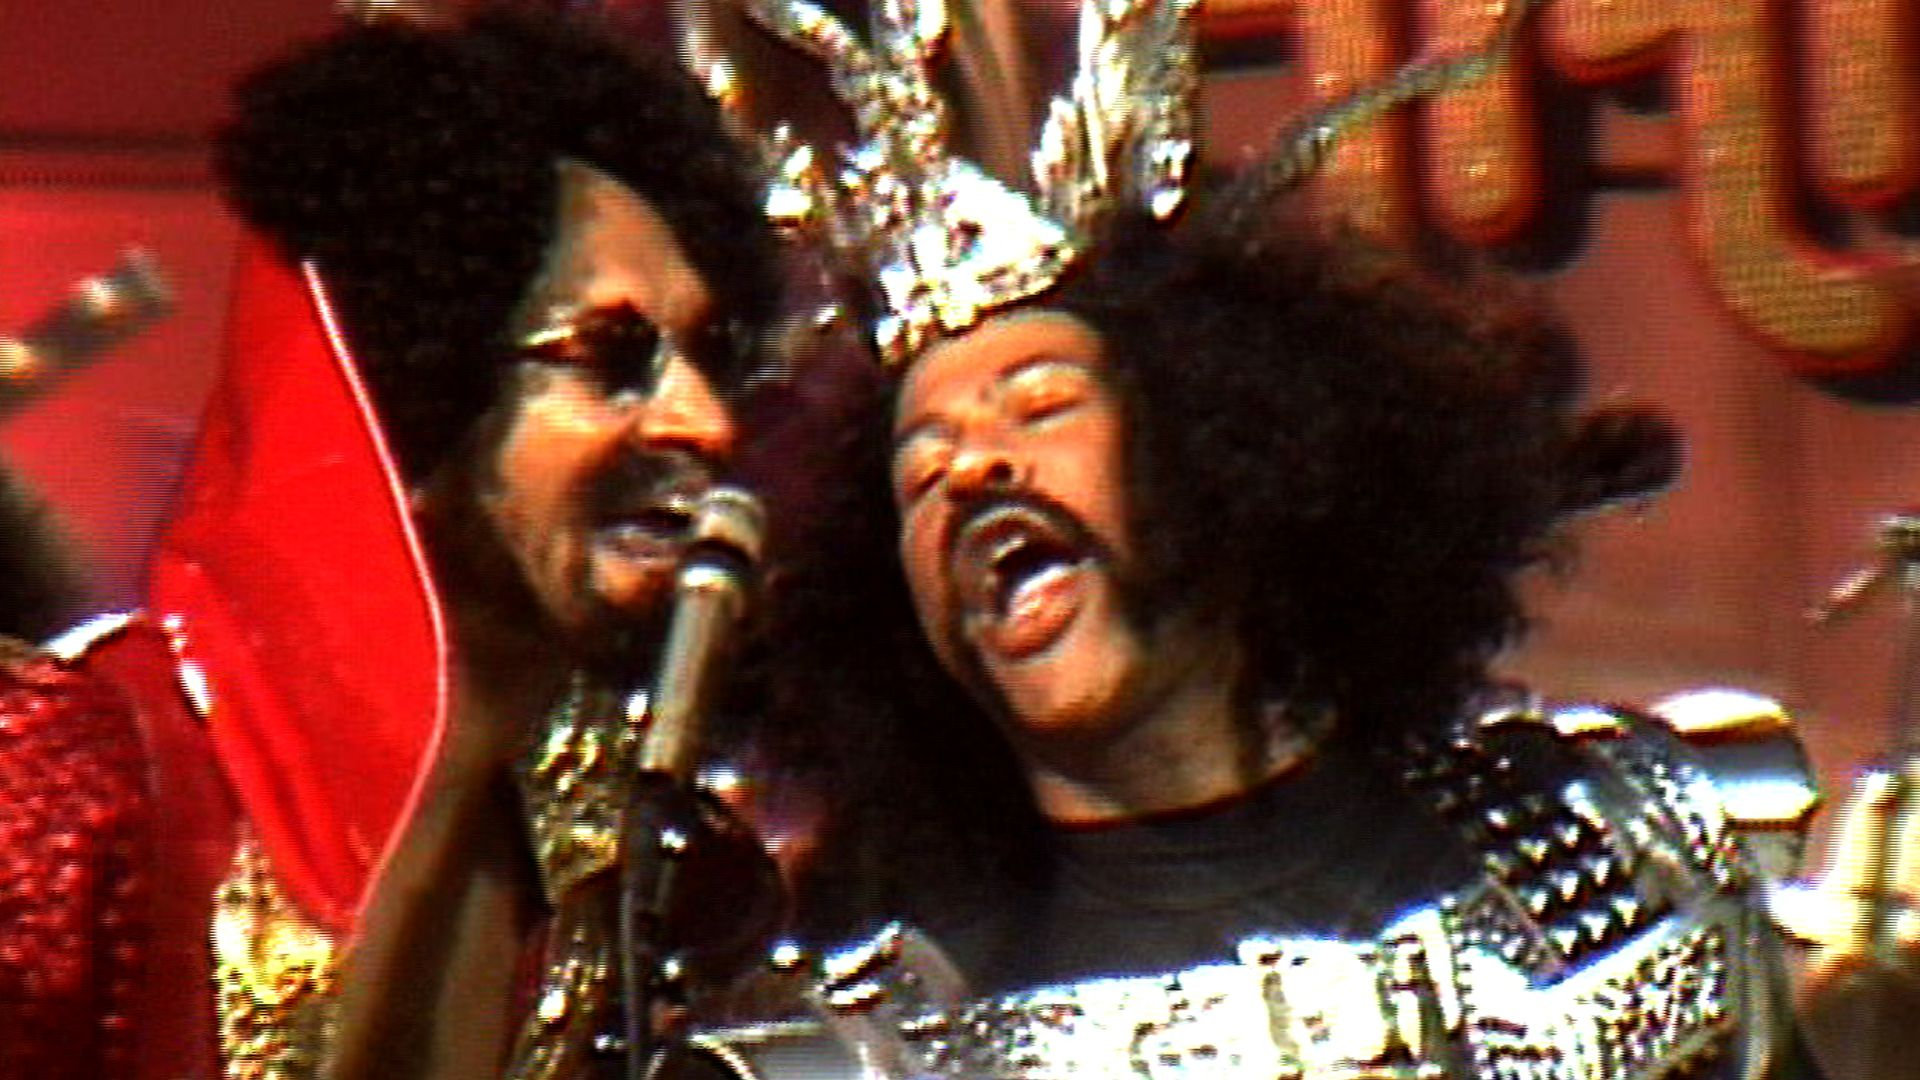 70s Funk Bands : Funky nonsense key and peele video clip comedy central